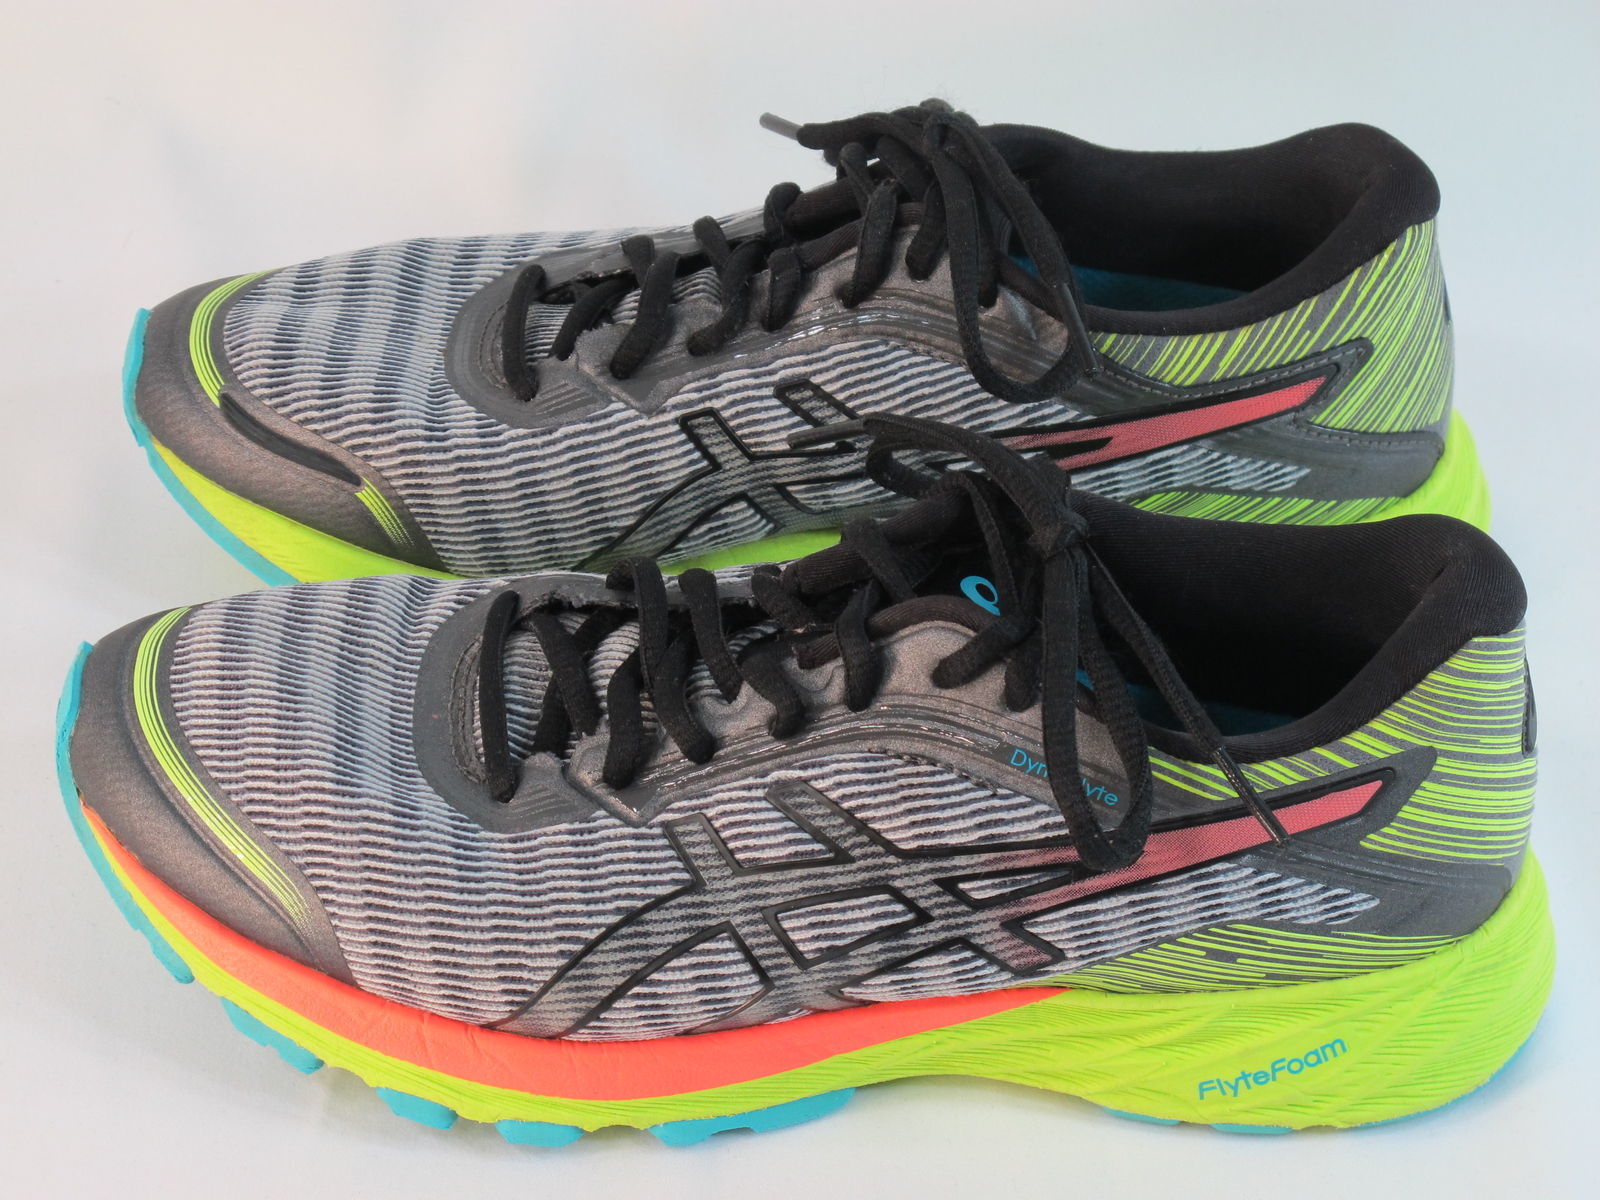 ASICS Dynaflyte Running Shoes Women's Size 7.5 US Excellent Plus Condition